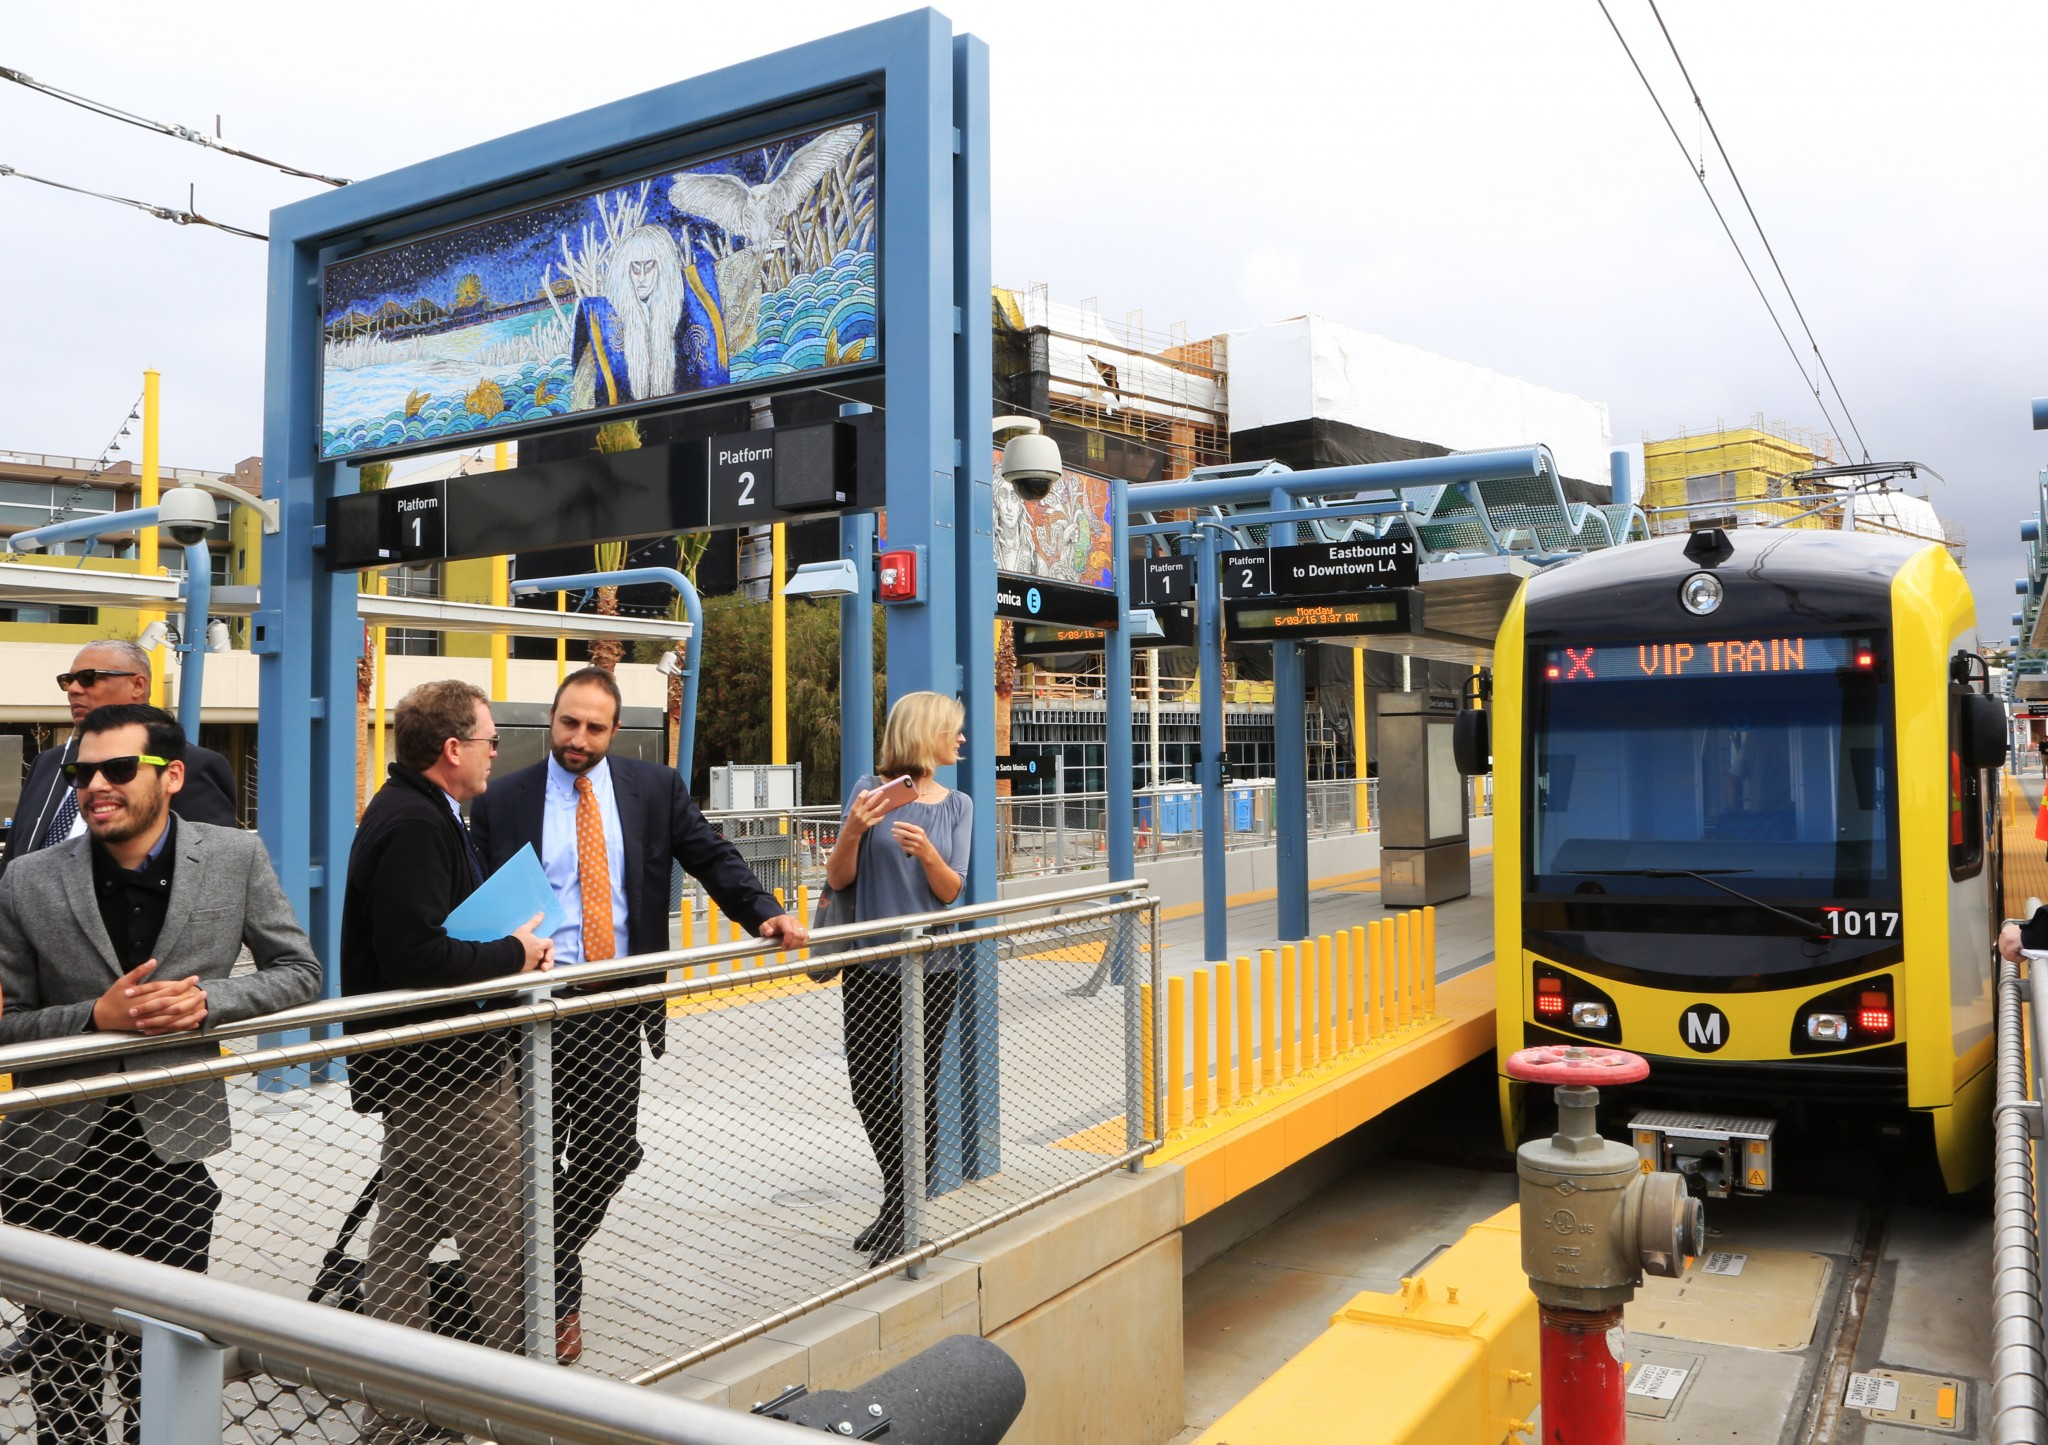 The Expo Line train at 4th and Colorado stop in Santa Monica. Photos by Robert LaFond.